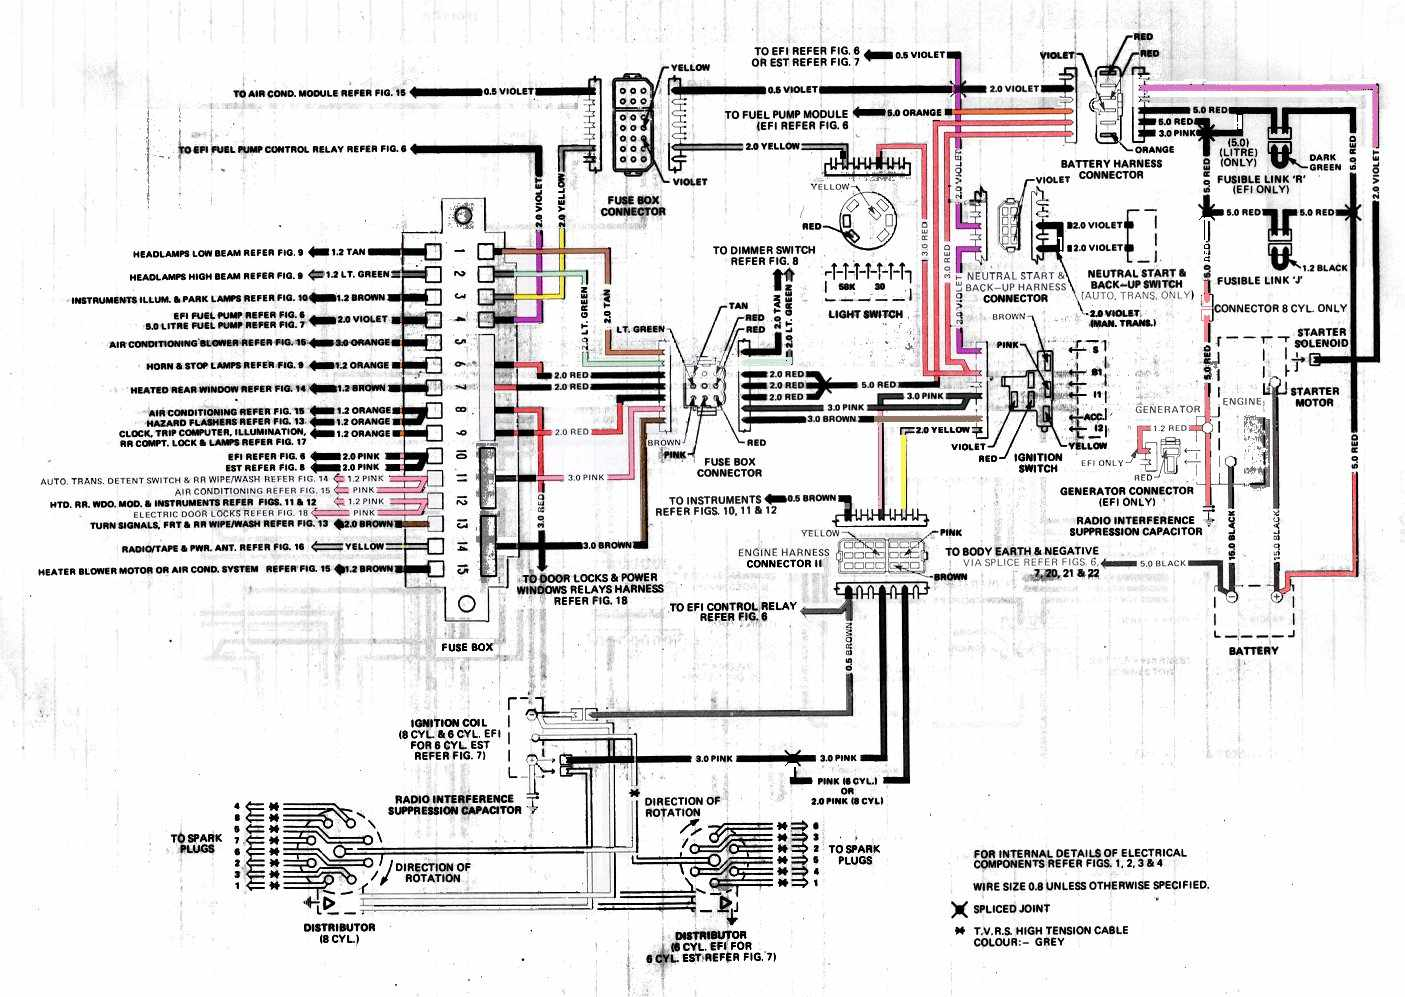 Holden+VK+Commodore+Generator+Electrical+Wiring+Diagram wiring diagrams maker readingrat net wiring harness restoration at soozxer.org